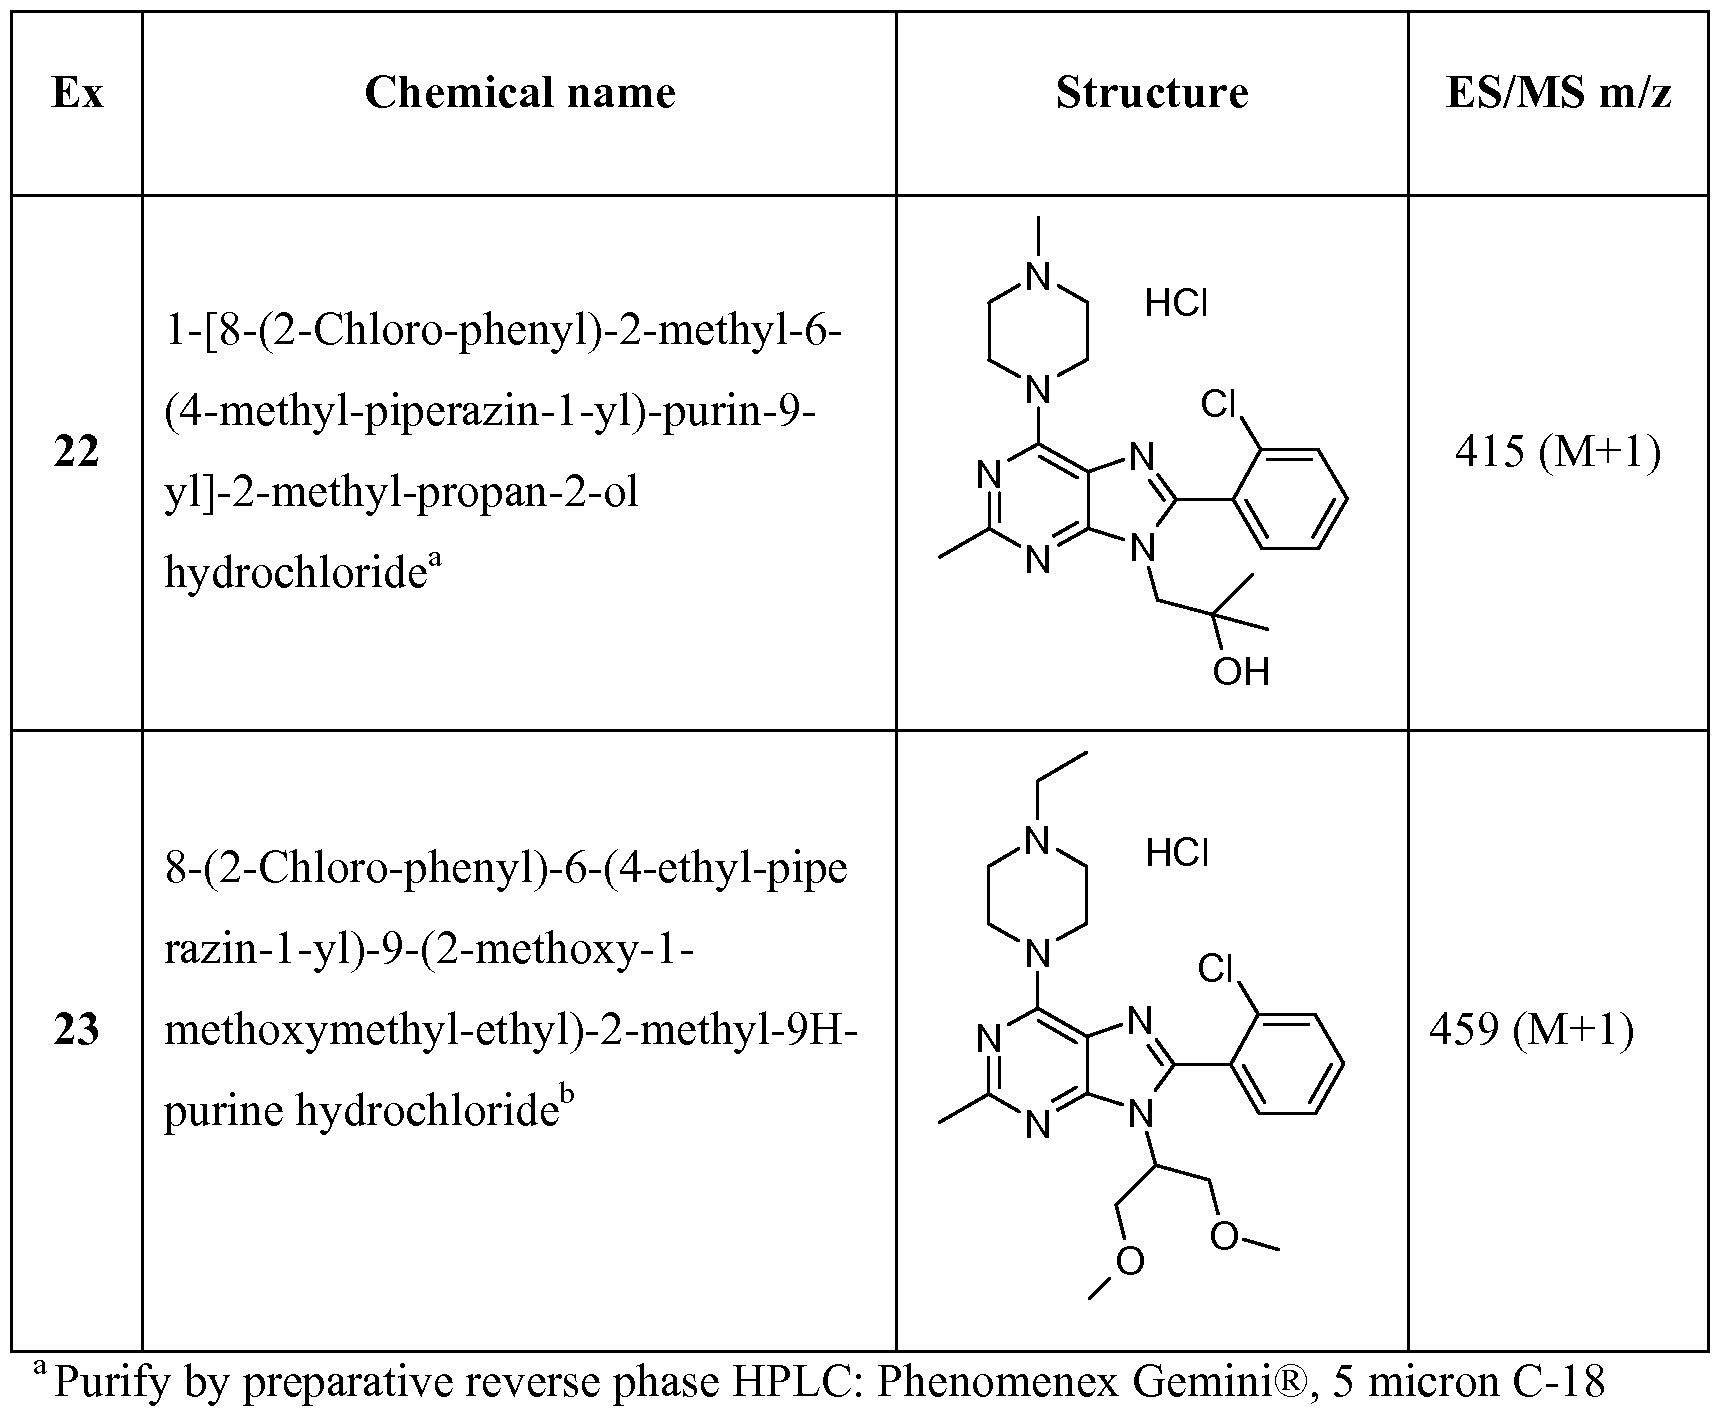 how to prepare a 18-crown-6 solution in acetonitrile